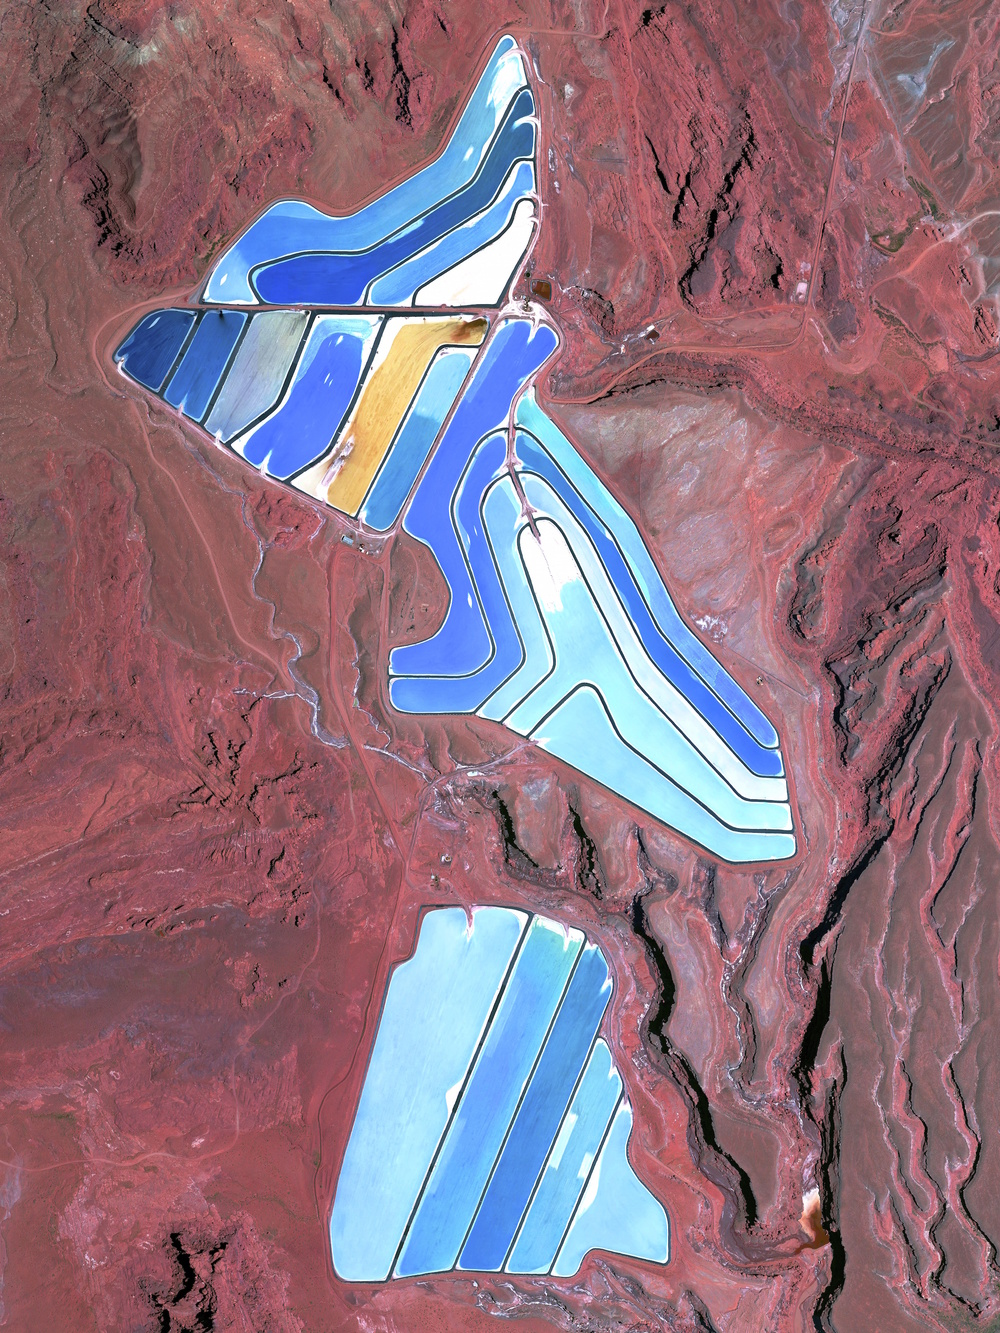 5/30/2015 Evaporation ponds of Intrepid Potash mine Moab, Utah, USA 38°29'0.16″N 109°40'52.80″W   The Intrepid Potash Mine in Moab, Utah, USA produces muriate of potash, a potassium-containing salt used widely by farmers in fertilizer. The salt is pumped to the surface from underground deposits and dried in massive solar ponds that vibrantly extend across the landscape. As the water evaporates over the course of 300 days, the salts crystallize out. So why are you seeing such vibrant colors? The water is dyed bright blue to reduce the amount of time it takes for the potash to crystallize; darker water absorbs more sunlight and heat.